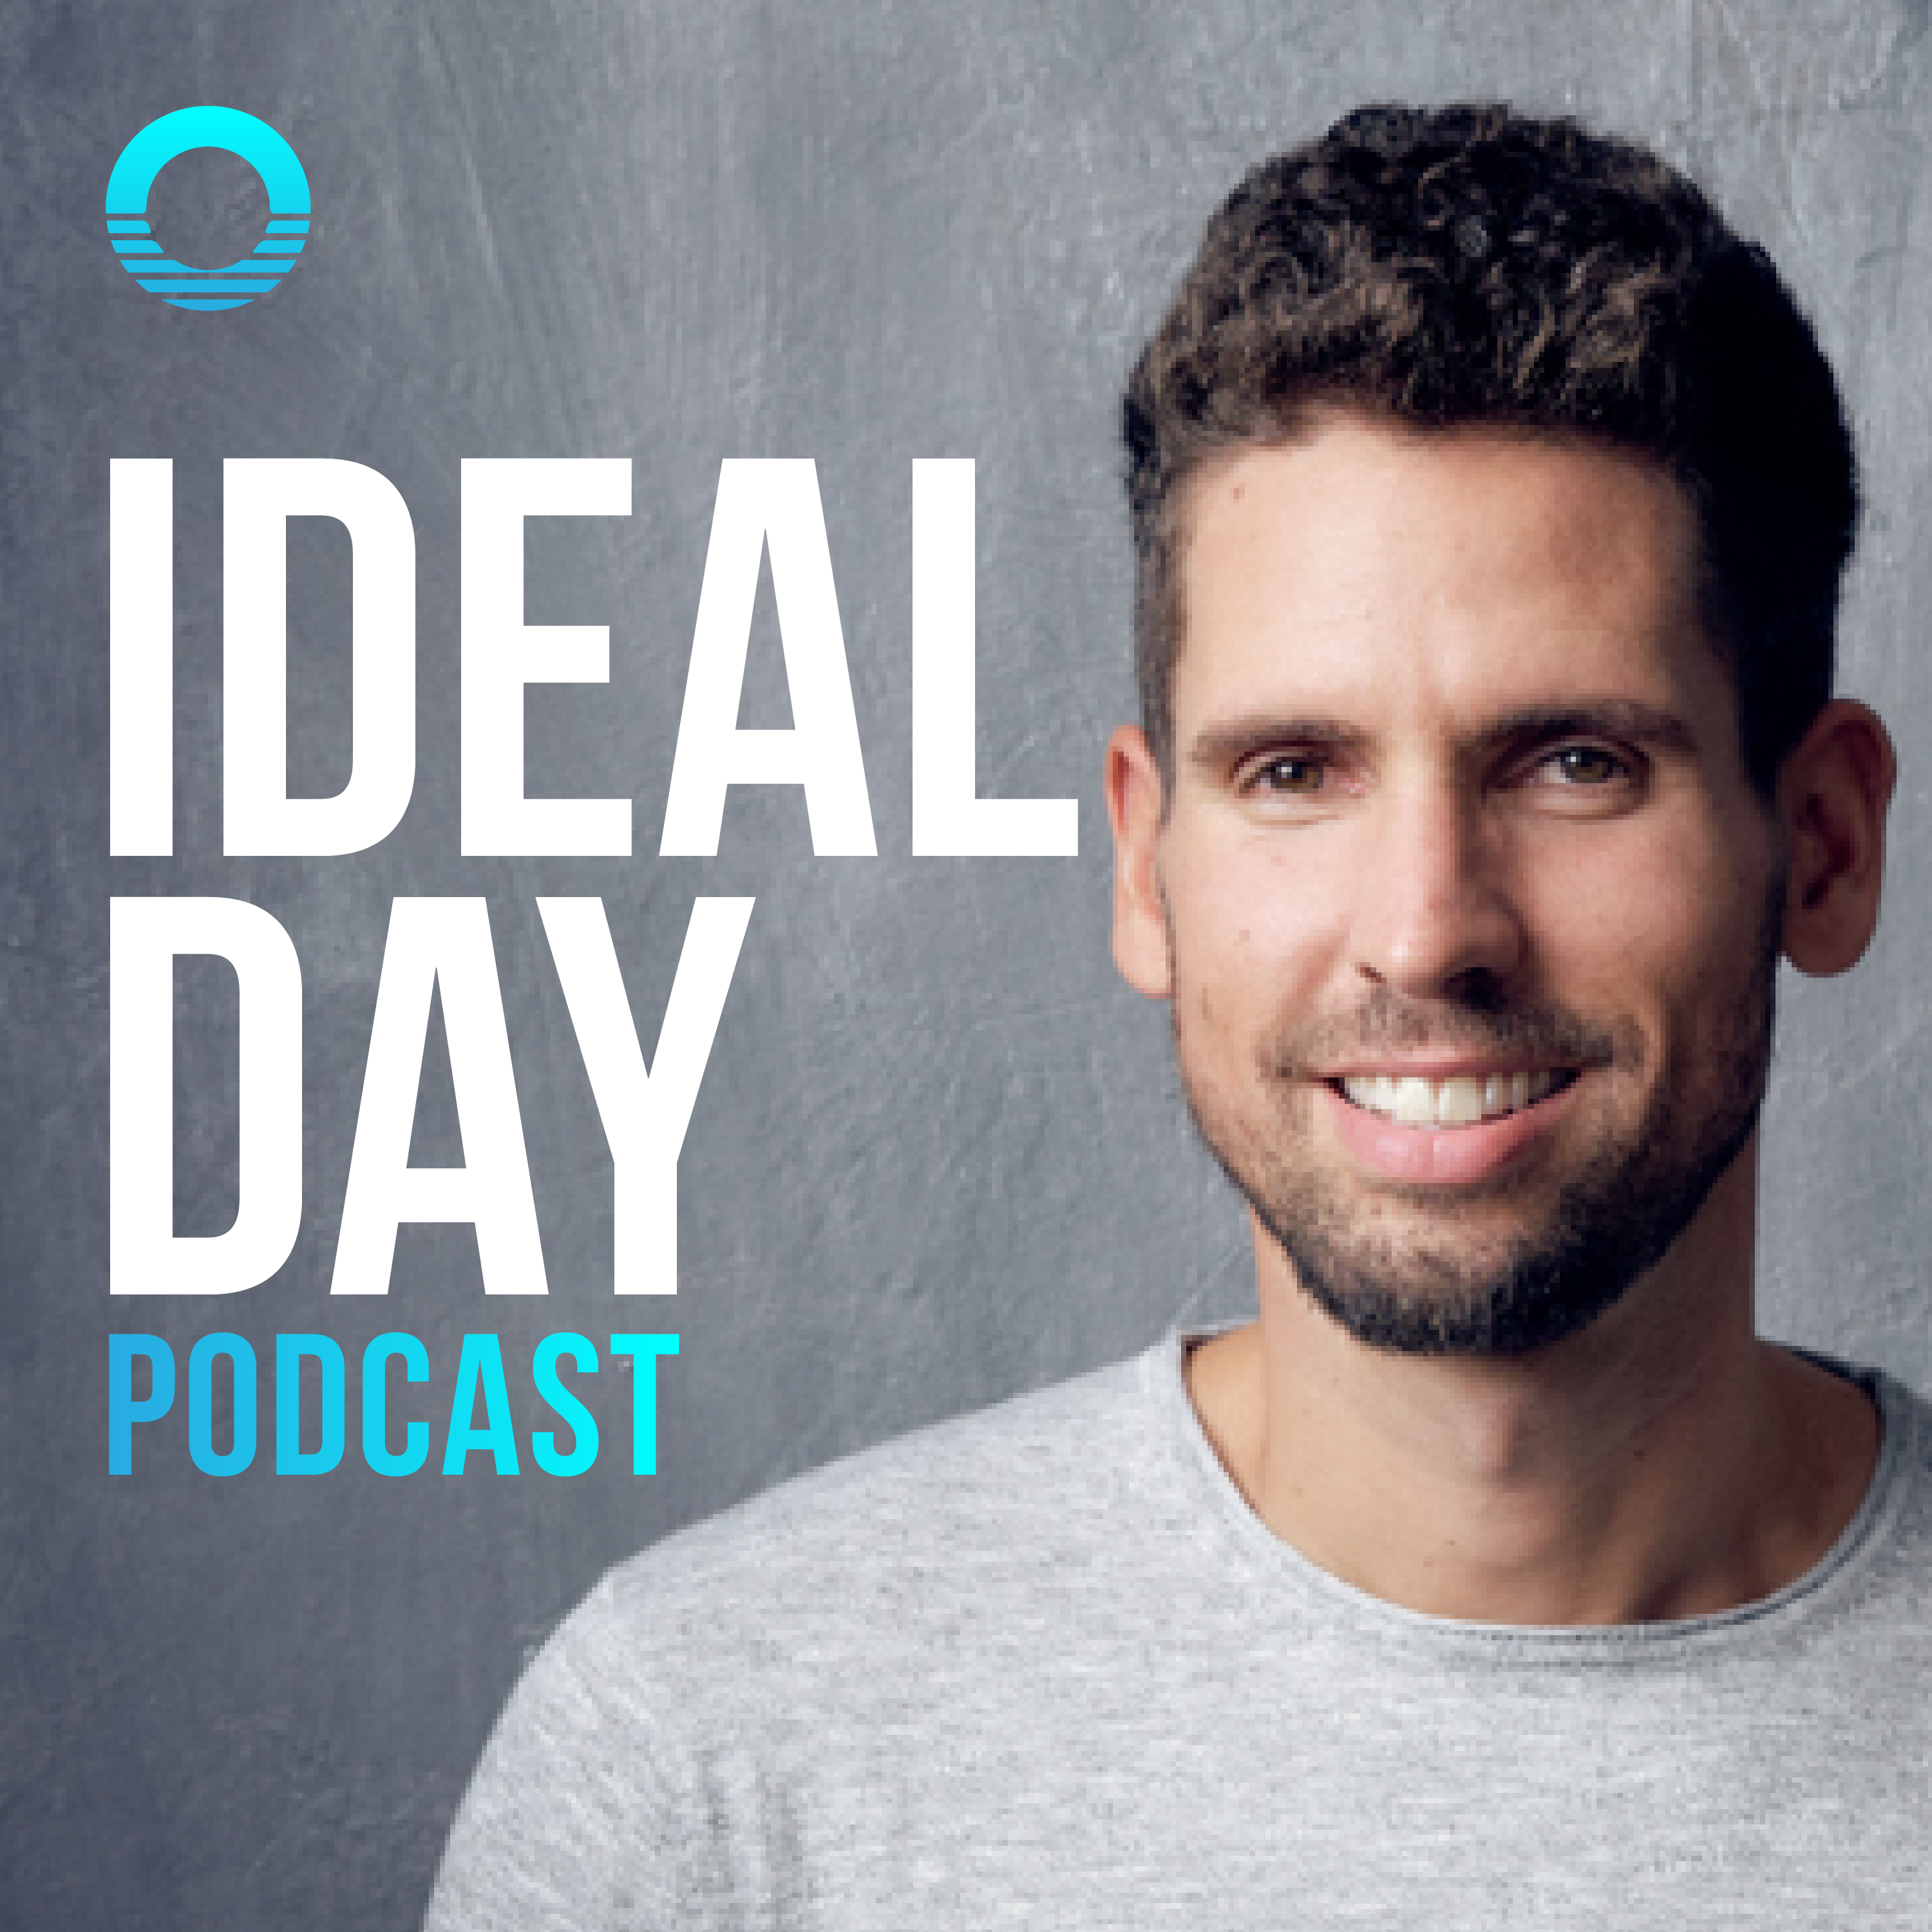 Ideal Day Podcast show art